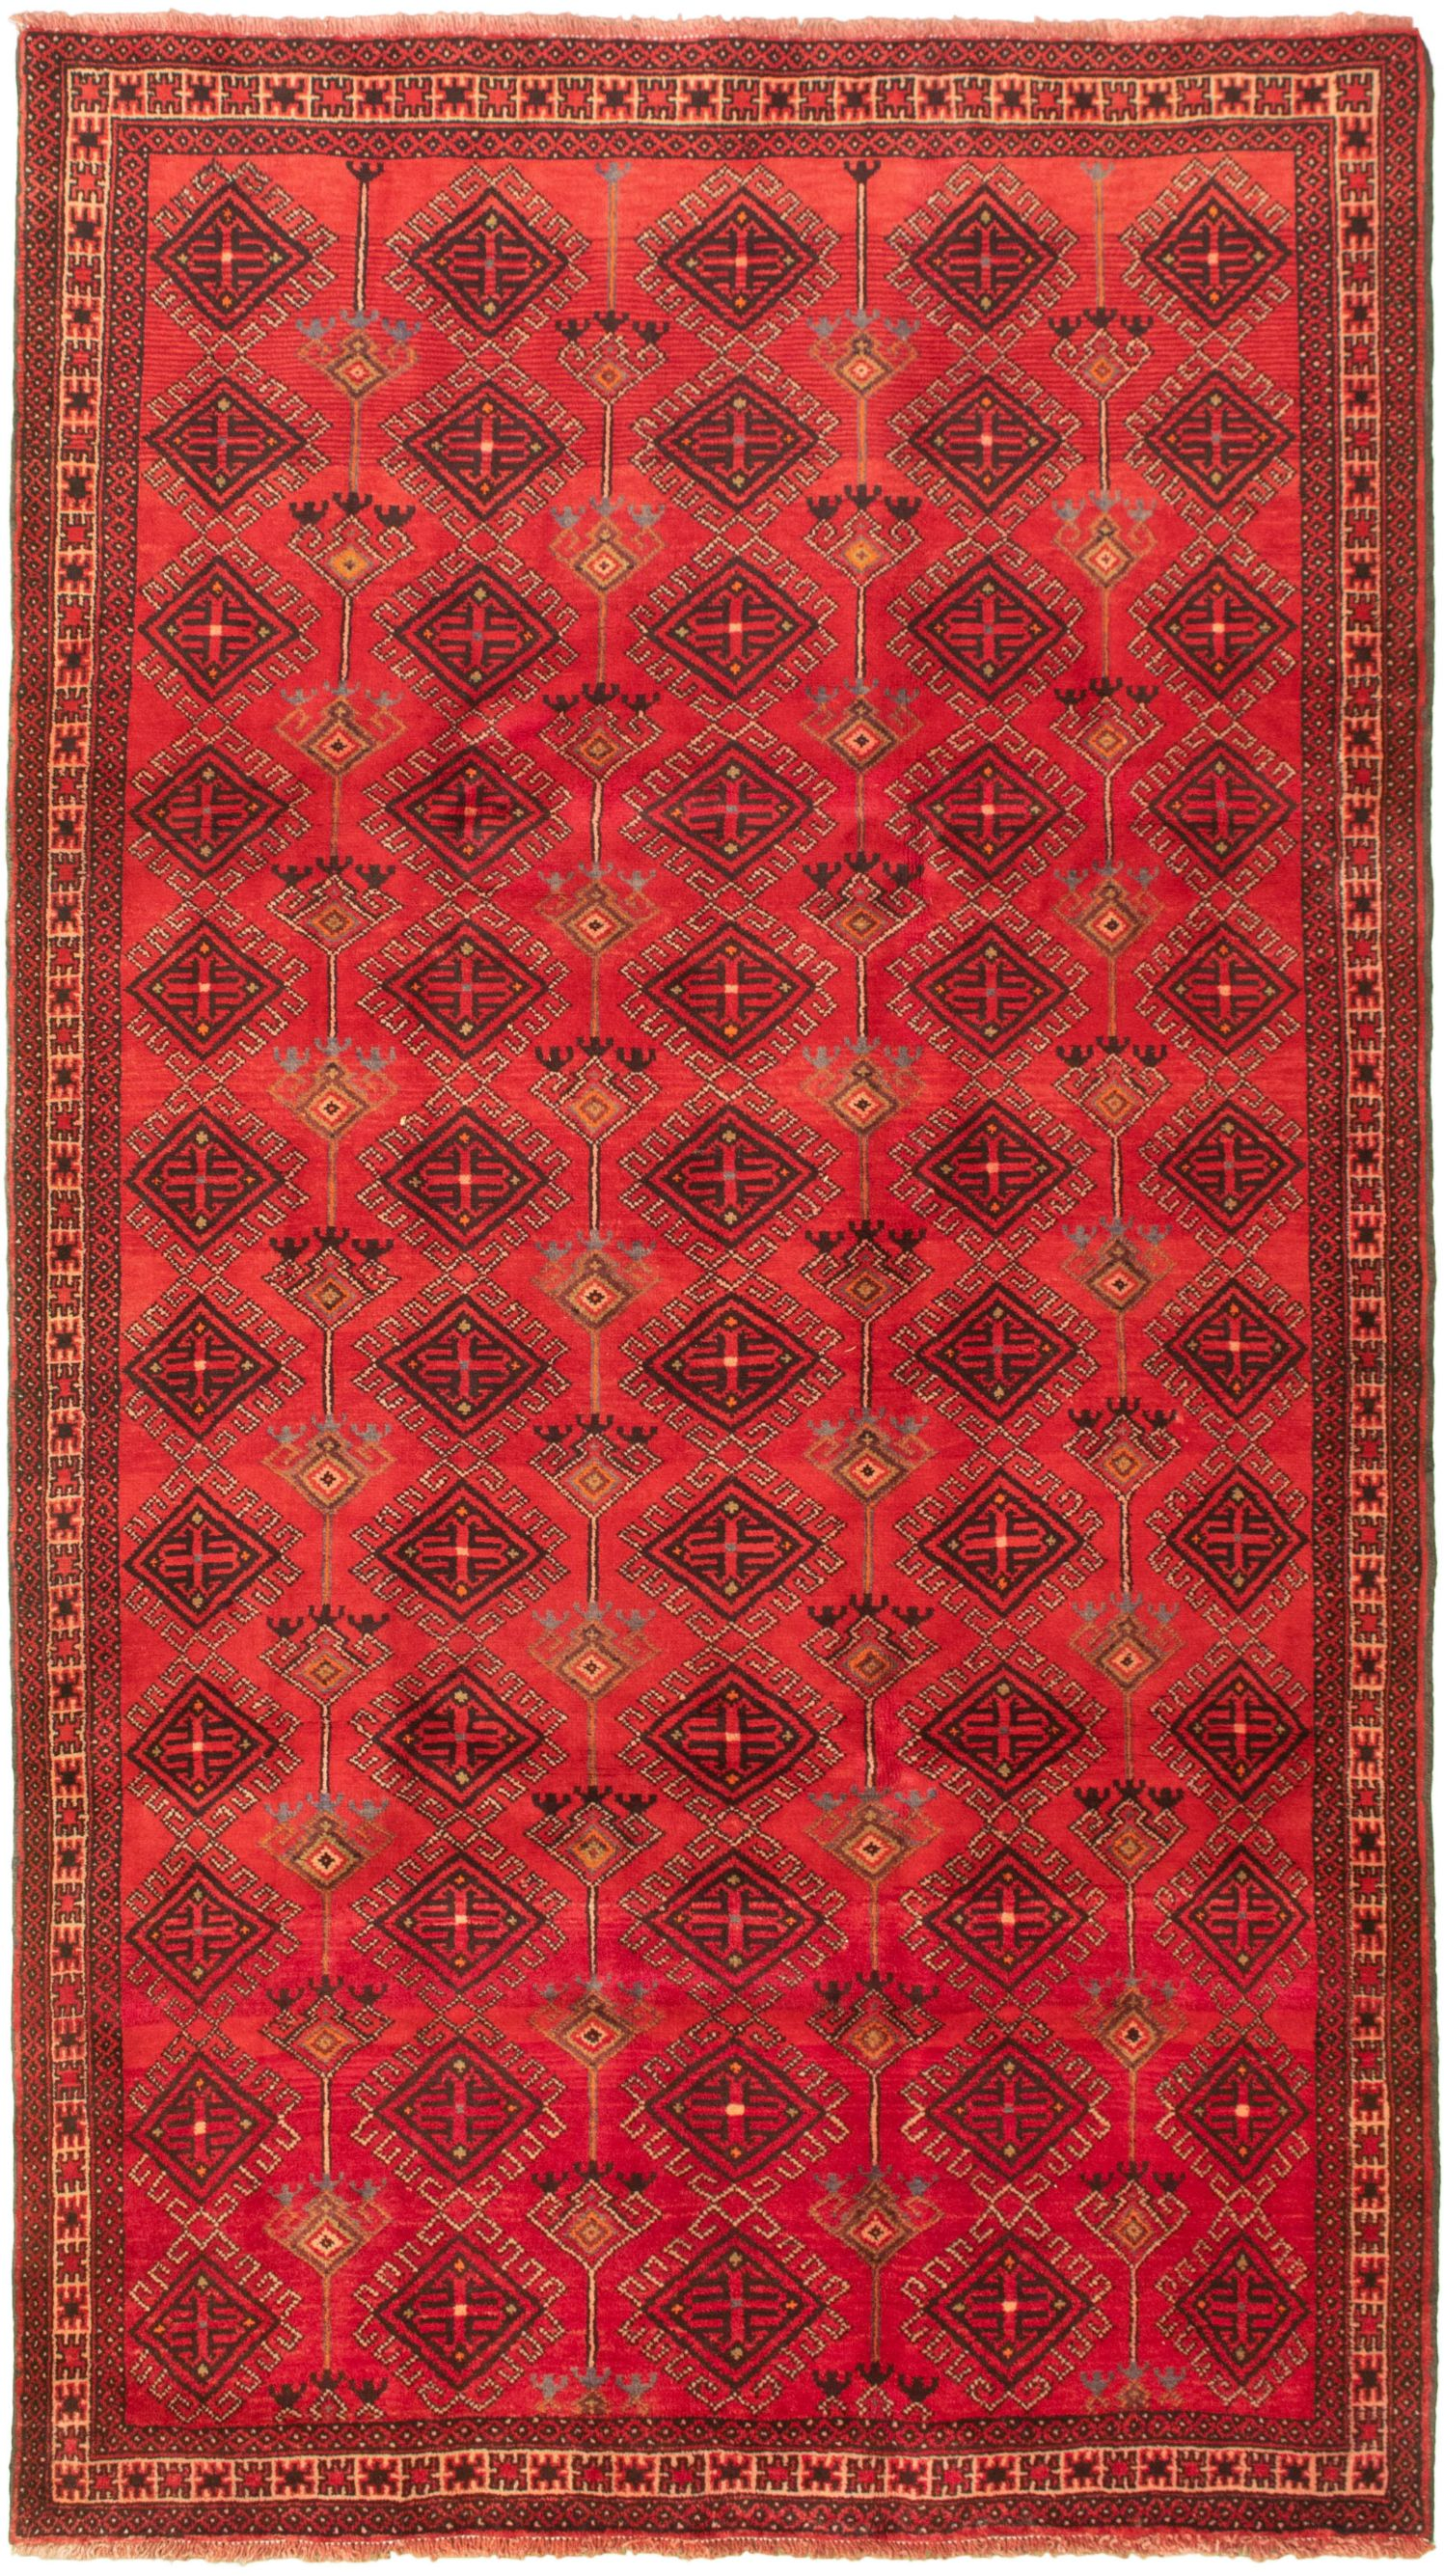 """Hand-knotted Authentic Turkish Red Wool Rug 5'7"""" x 10'1""""  Size: 5'7"""" x 10'1"""""""